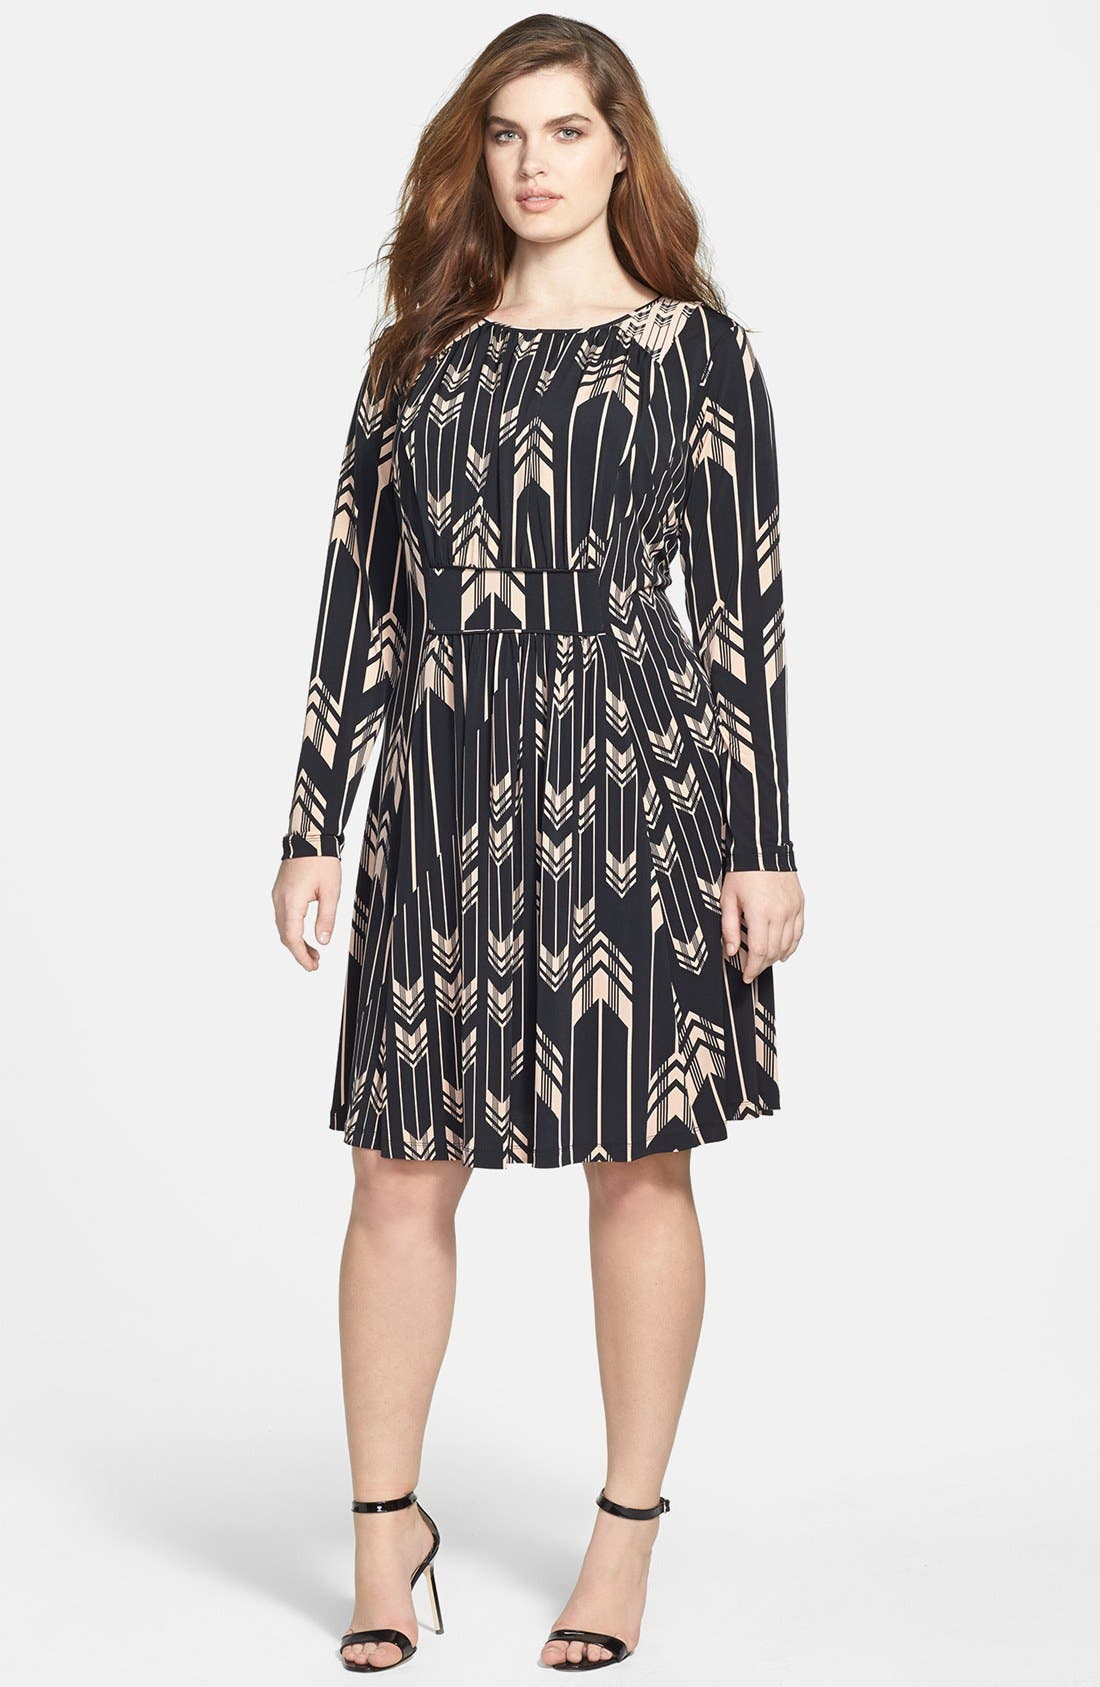 Alternate Image 1 Selected - Jessica Simpson Print Fit & Flare Dress (Plus Size)